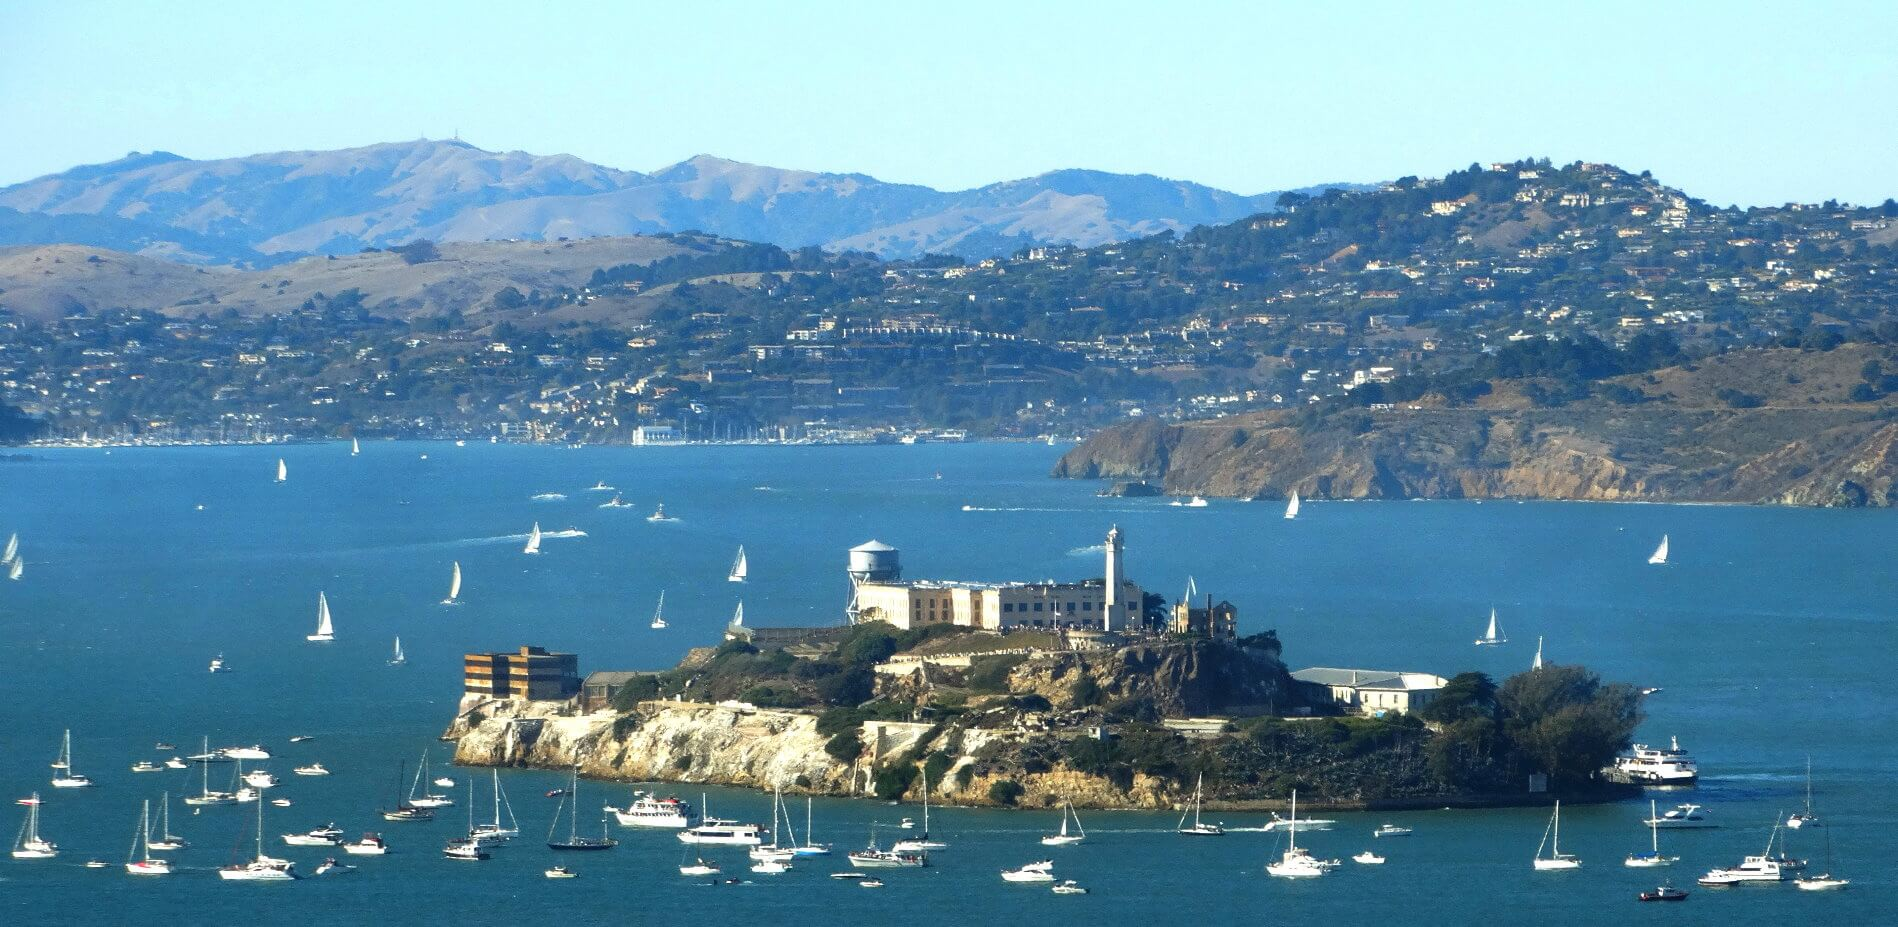 guided-tour-of-SanFrancisco-Bay-and-Alcatraz -island-prison-tour-with-tickets-incuded